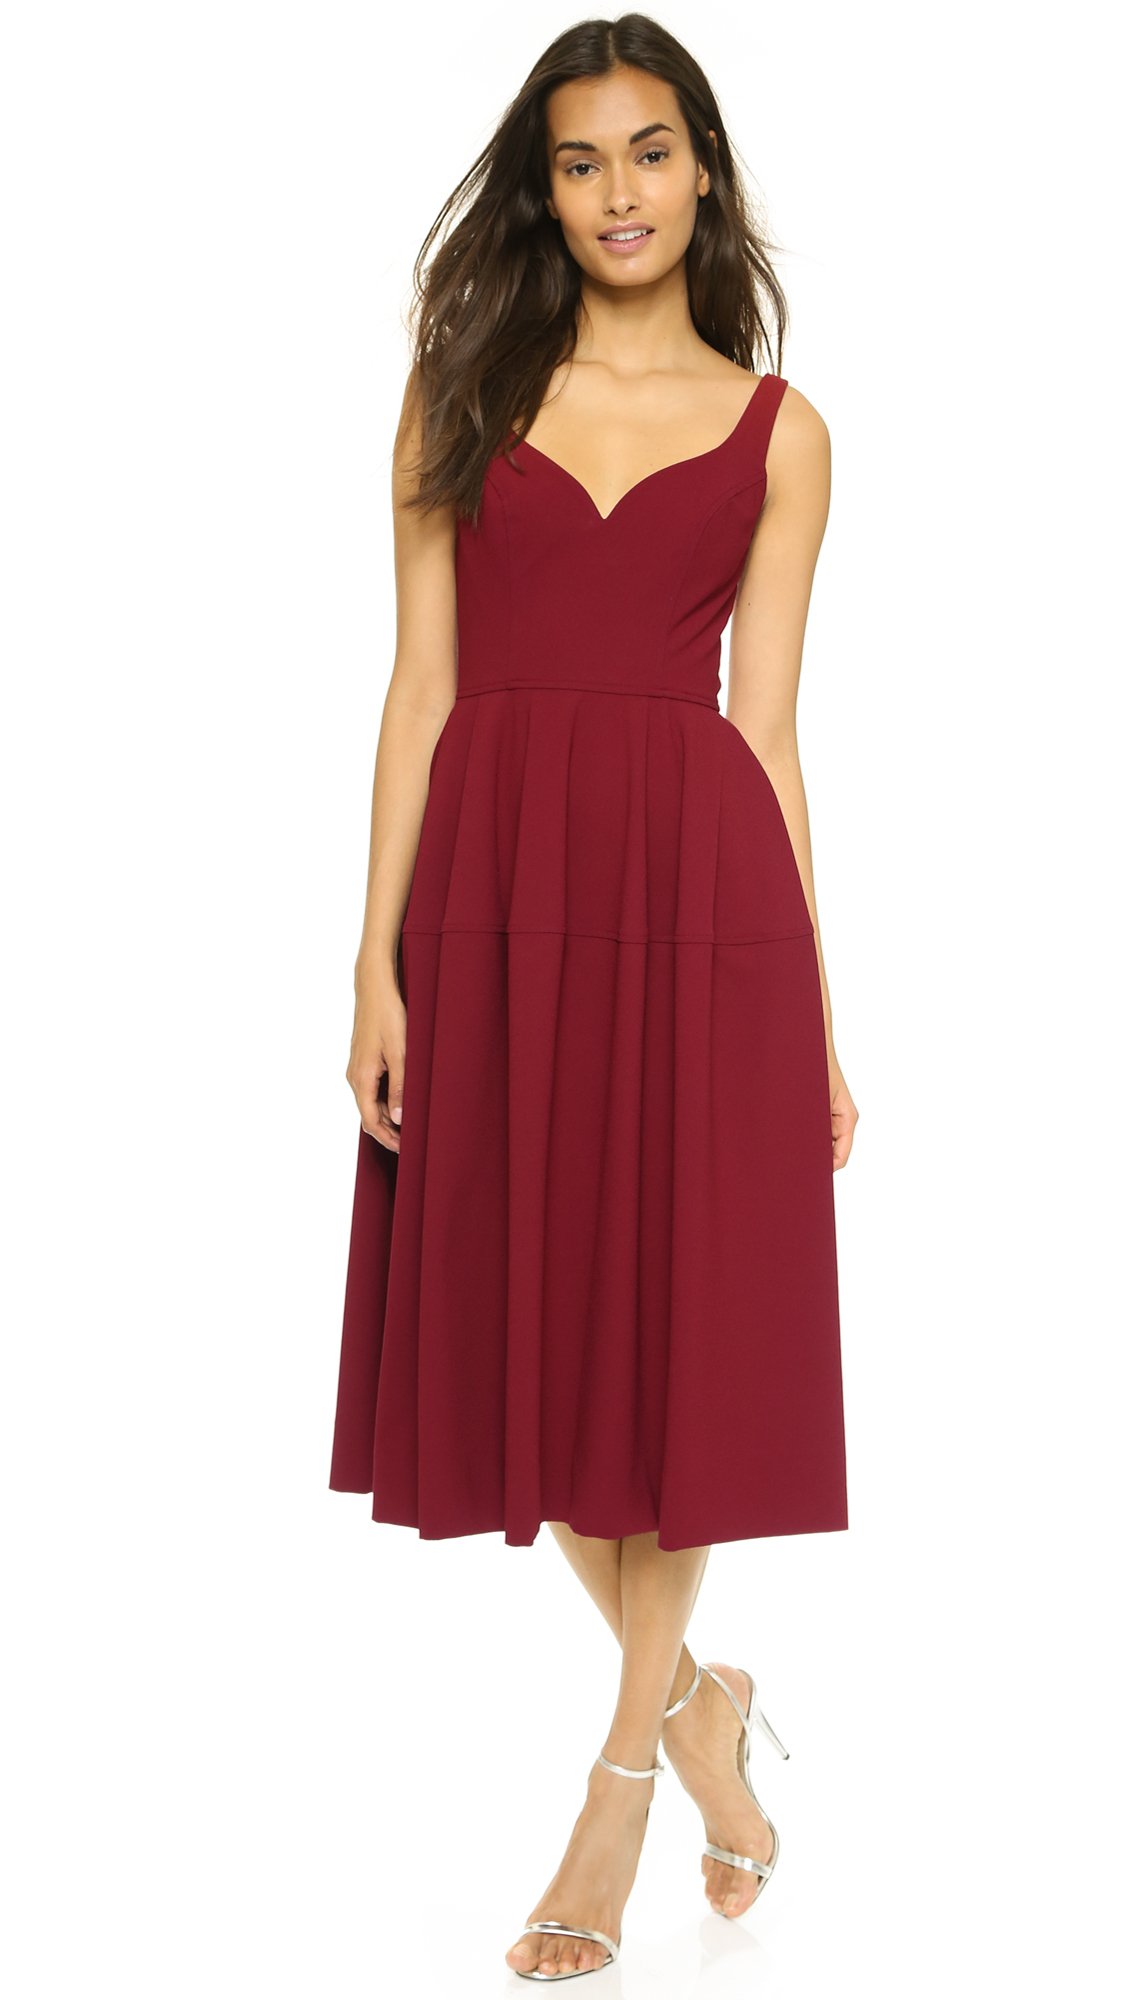 35be9c7b22 Lyst - JILL Jill Stuart Sweetheart Cocktail Dress - Cherry Wood in Red